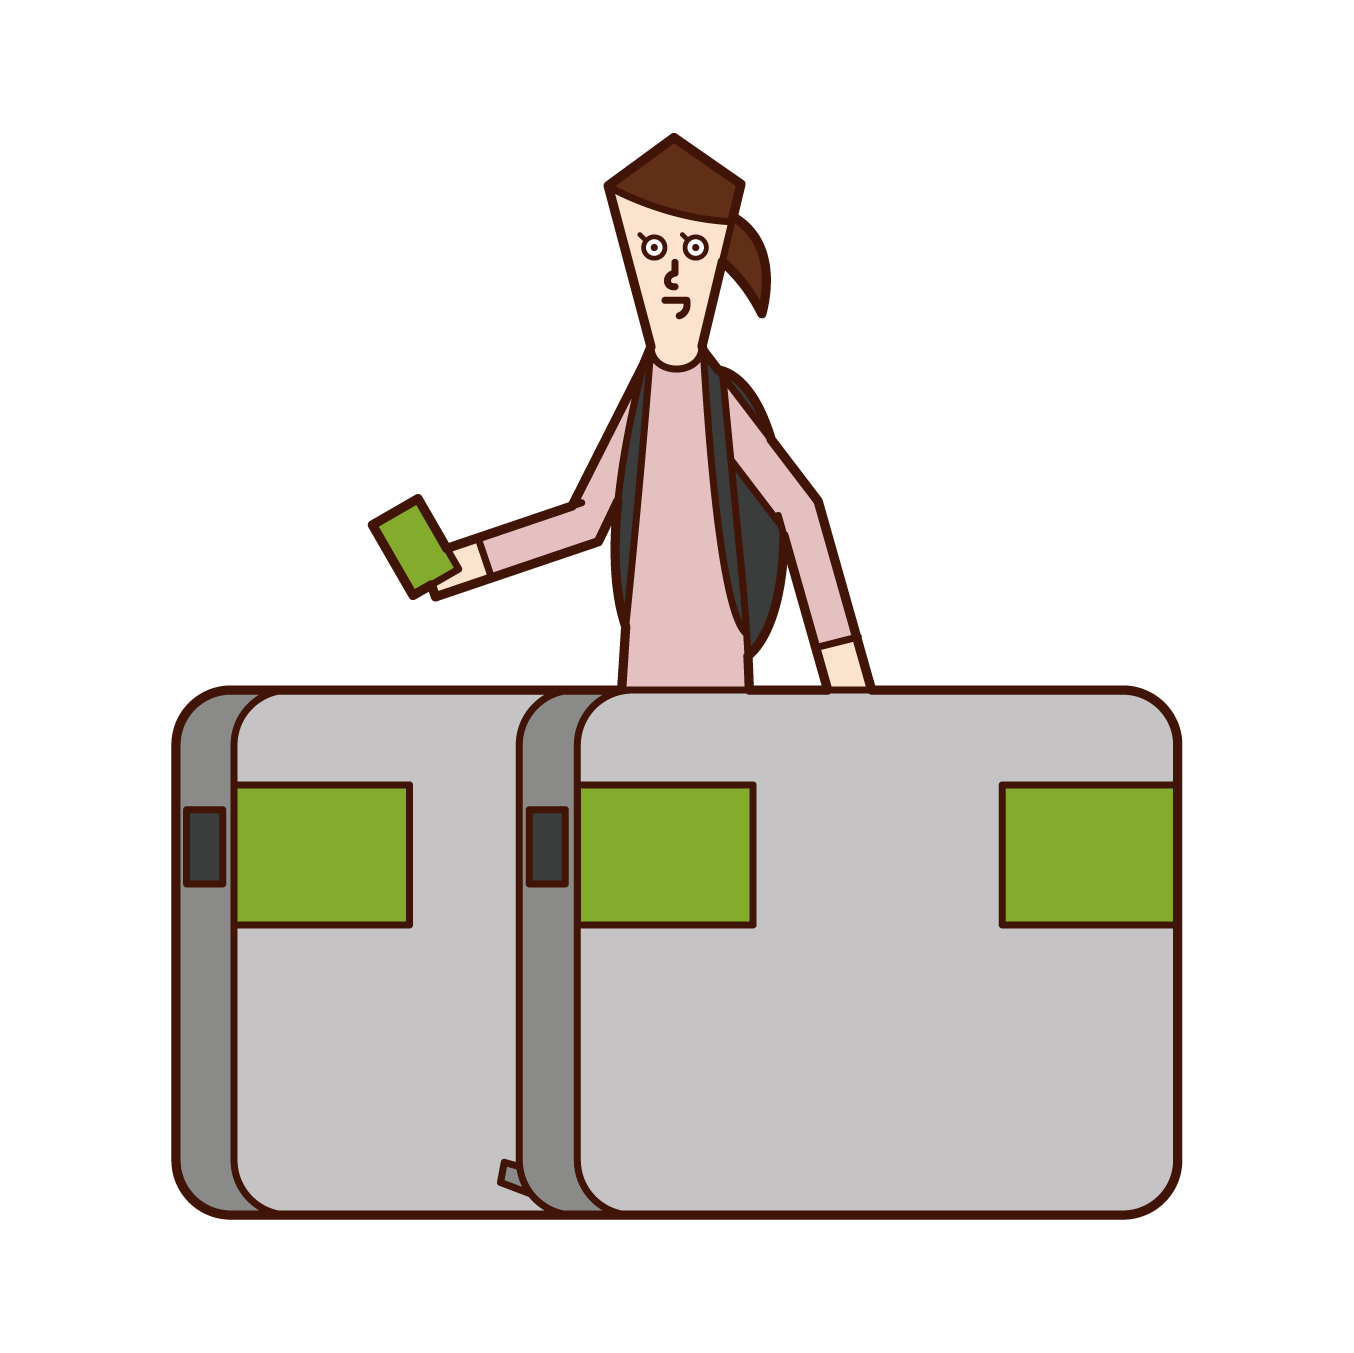 Illustration of a woman passing through the ticket gate of a station